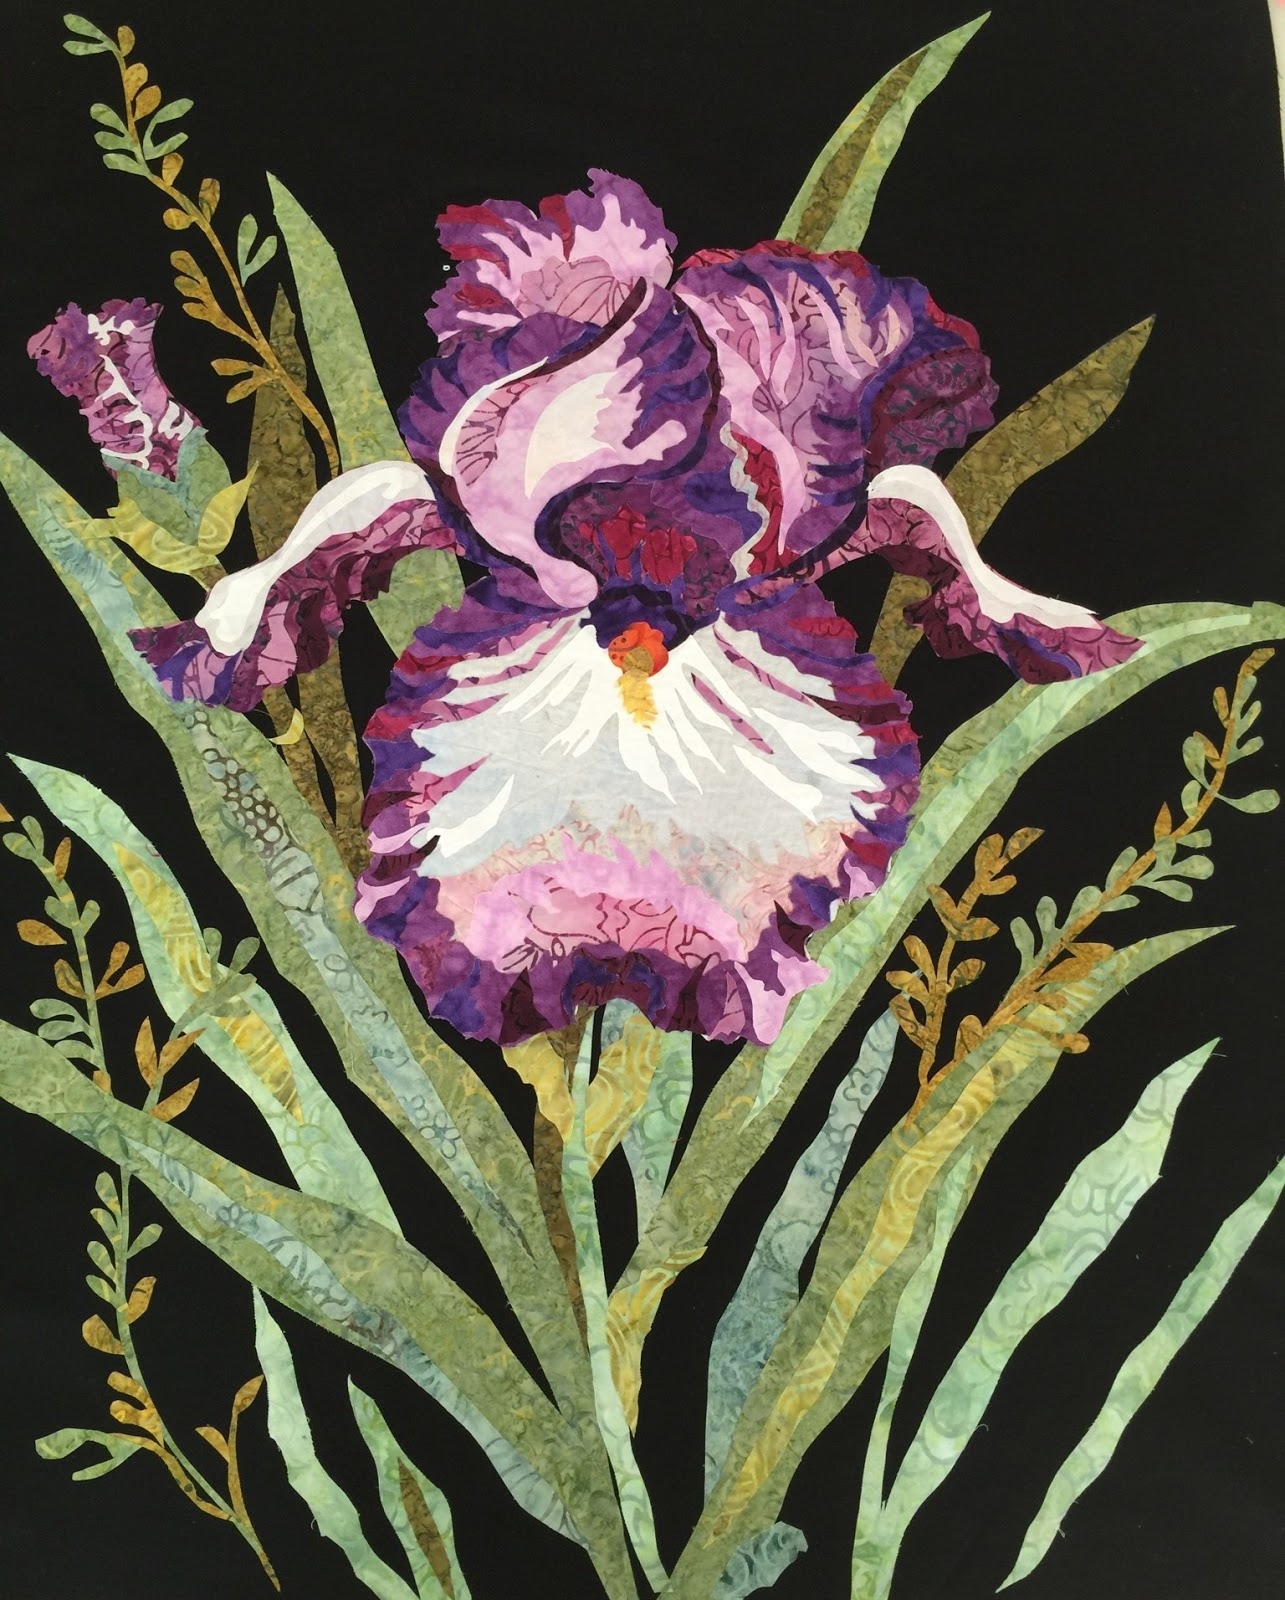 Melindas cutting garden quilting the iris now many of you are getting ready to quilt your flower i wanted to pass on some tip and tricks to give you some ideas on how to finishing your iris izmirmasajfo Choice Image